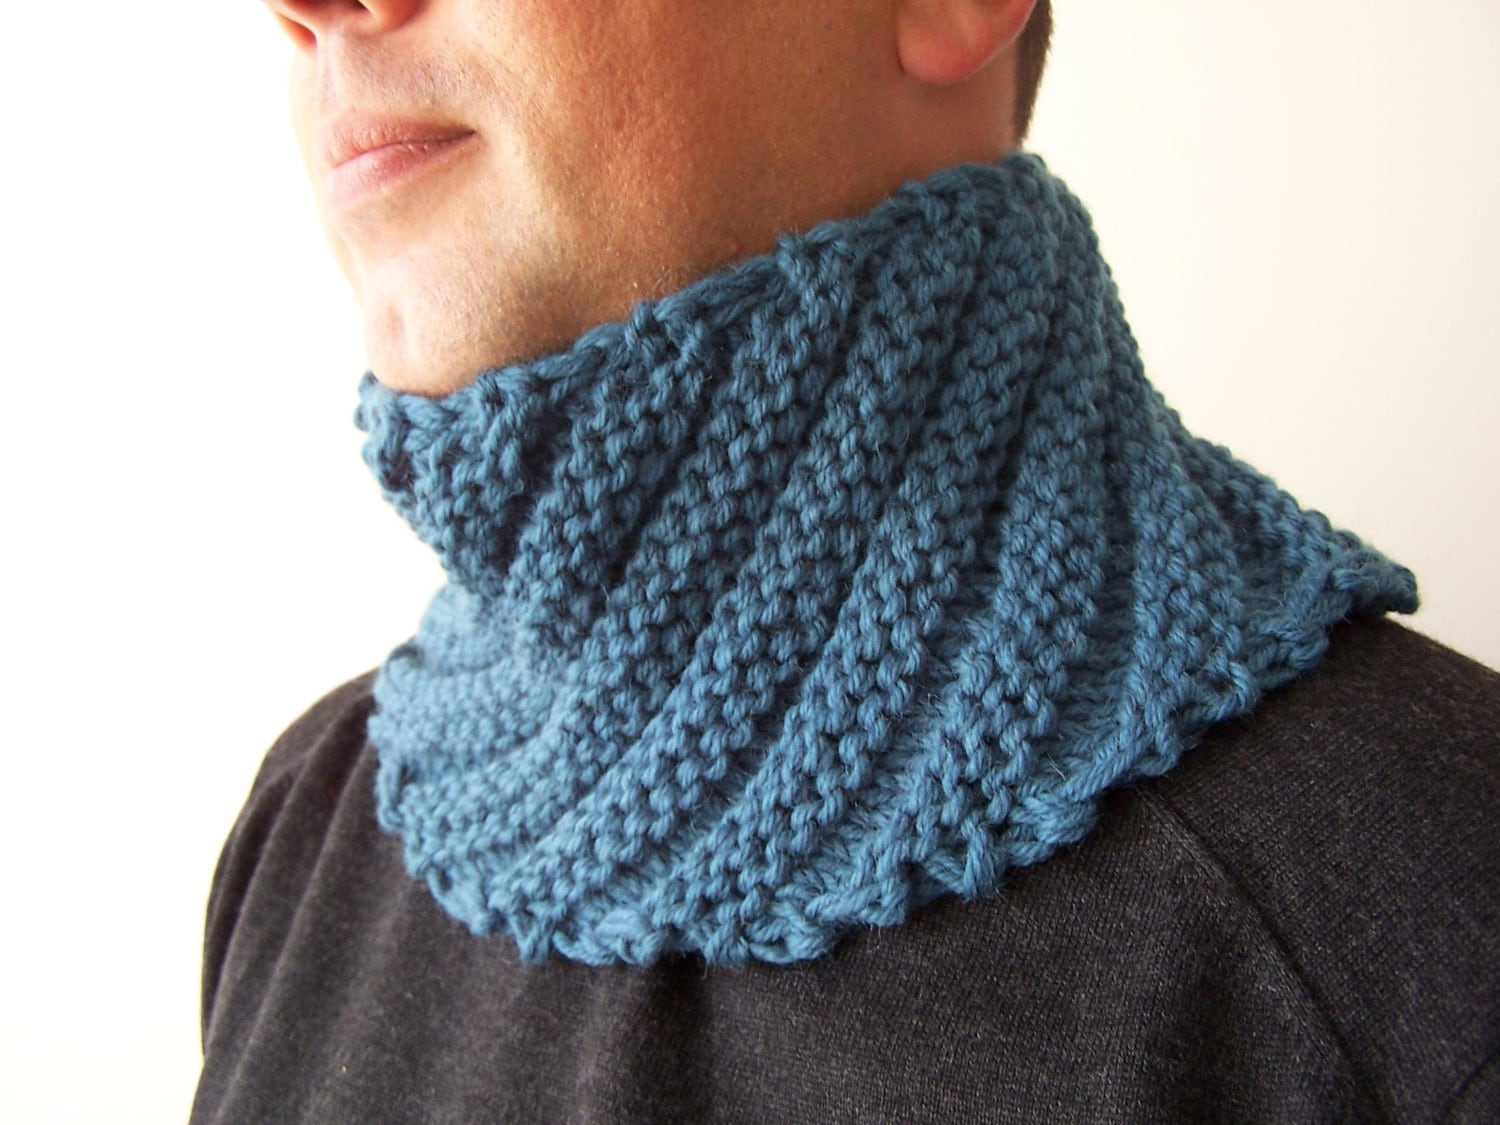 HAND KNIT BLUE Cowl Scarf for Men Fall Scarf Menswear by Ebruk Hand Knitted Men's Scarves